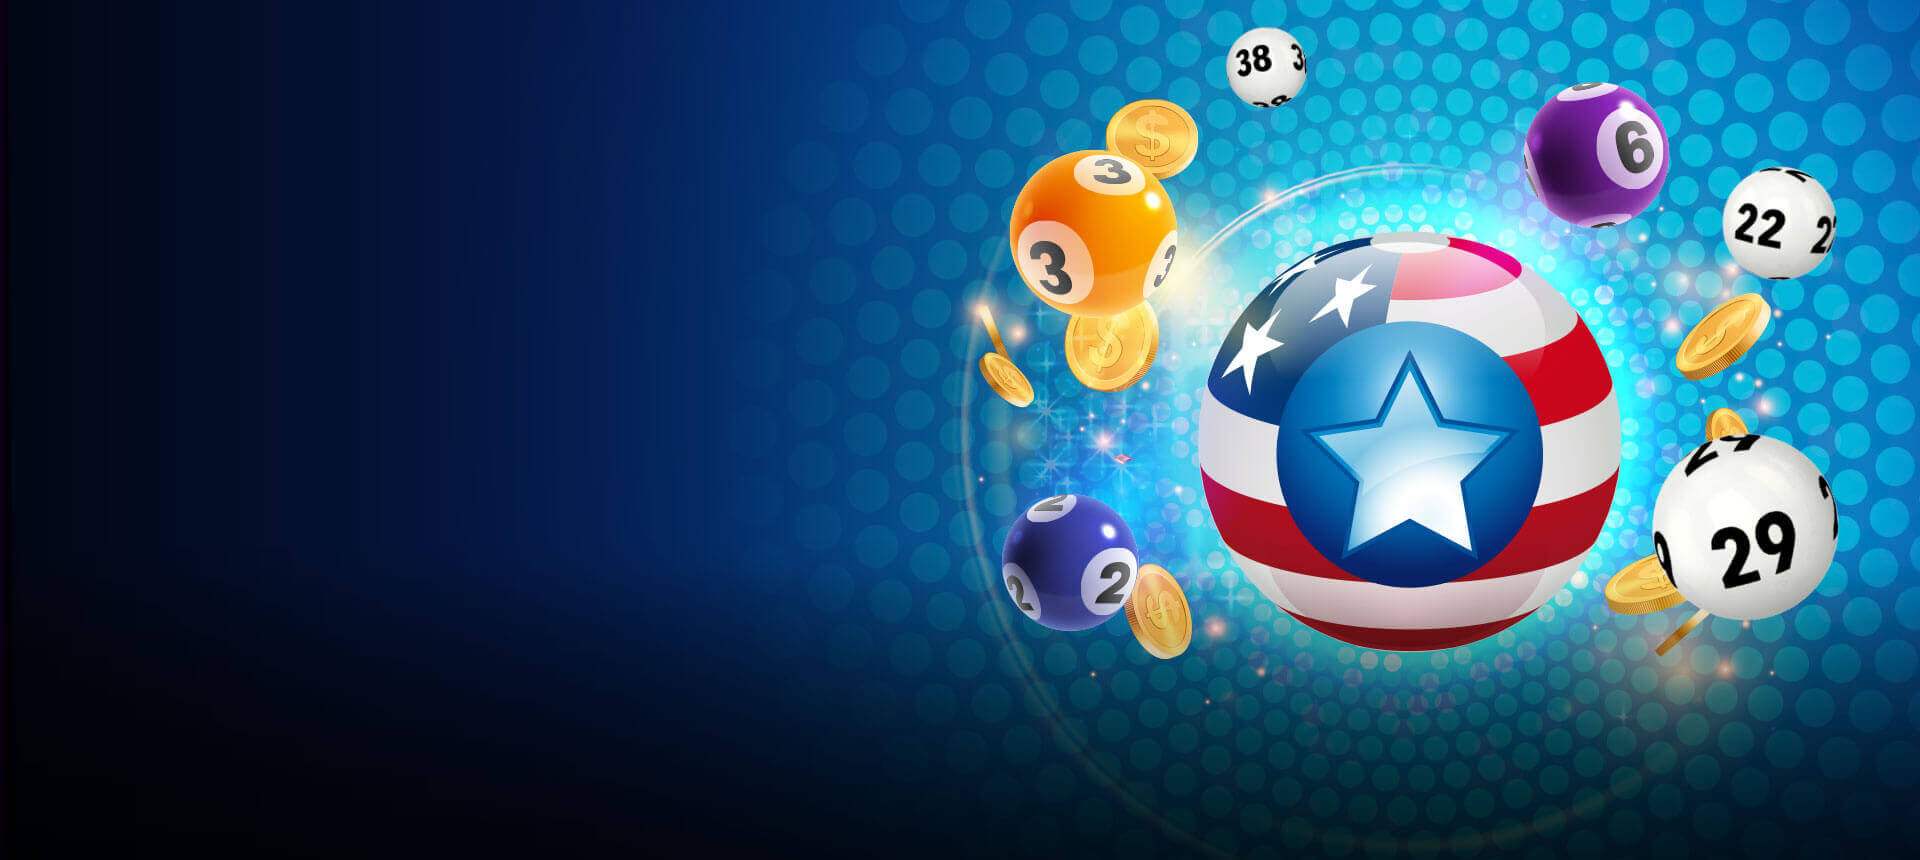 Play Mega Millions and Save 20%! Use Promo Code 20MMTRIL